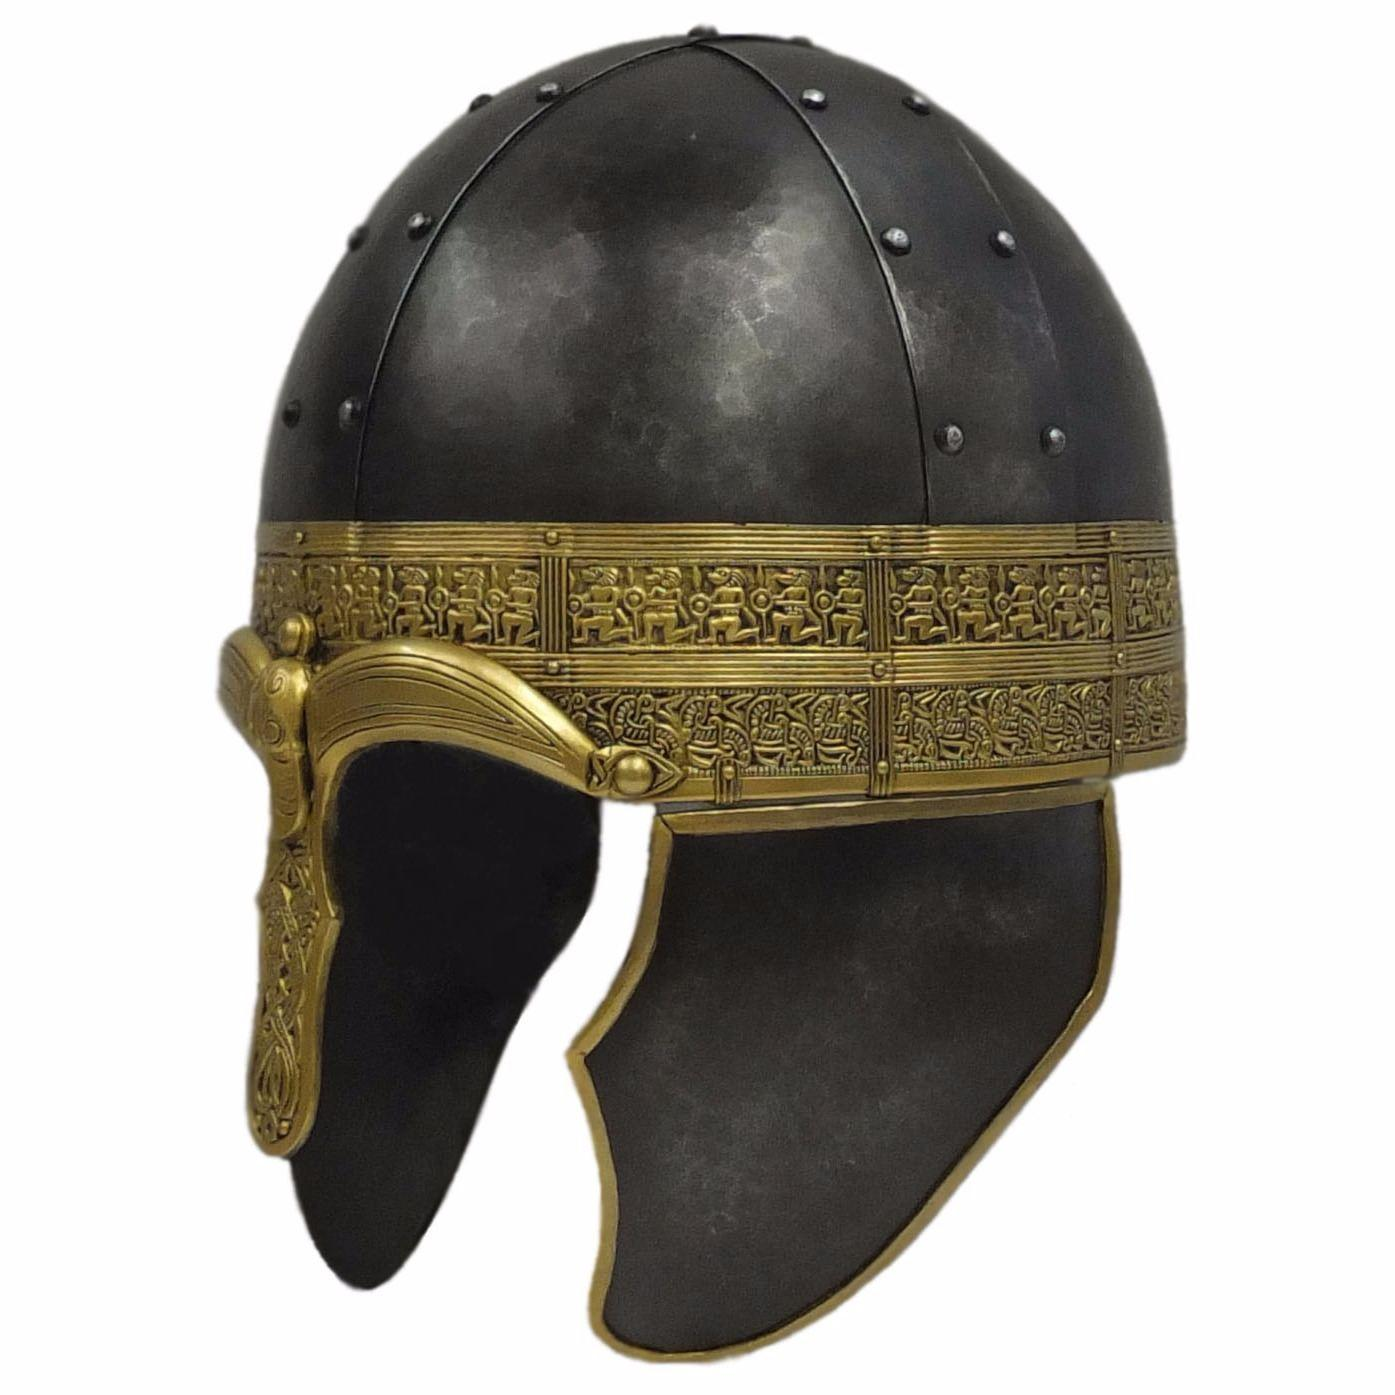 Staffordshire hoard design mercian spangehelm larp armour